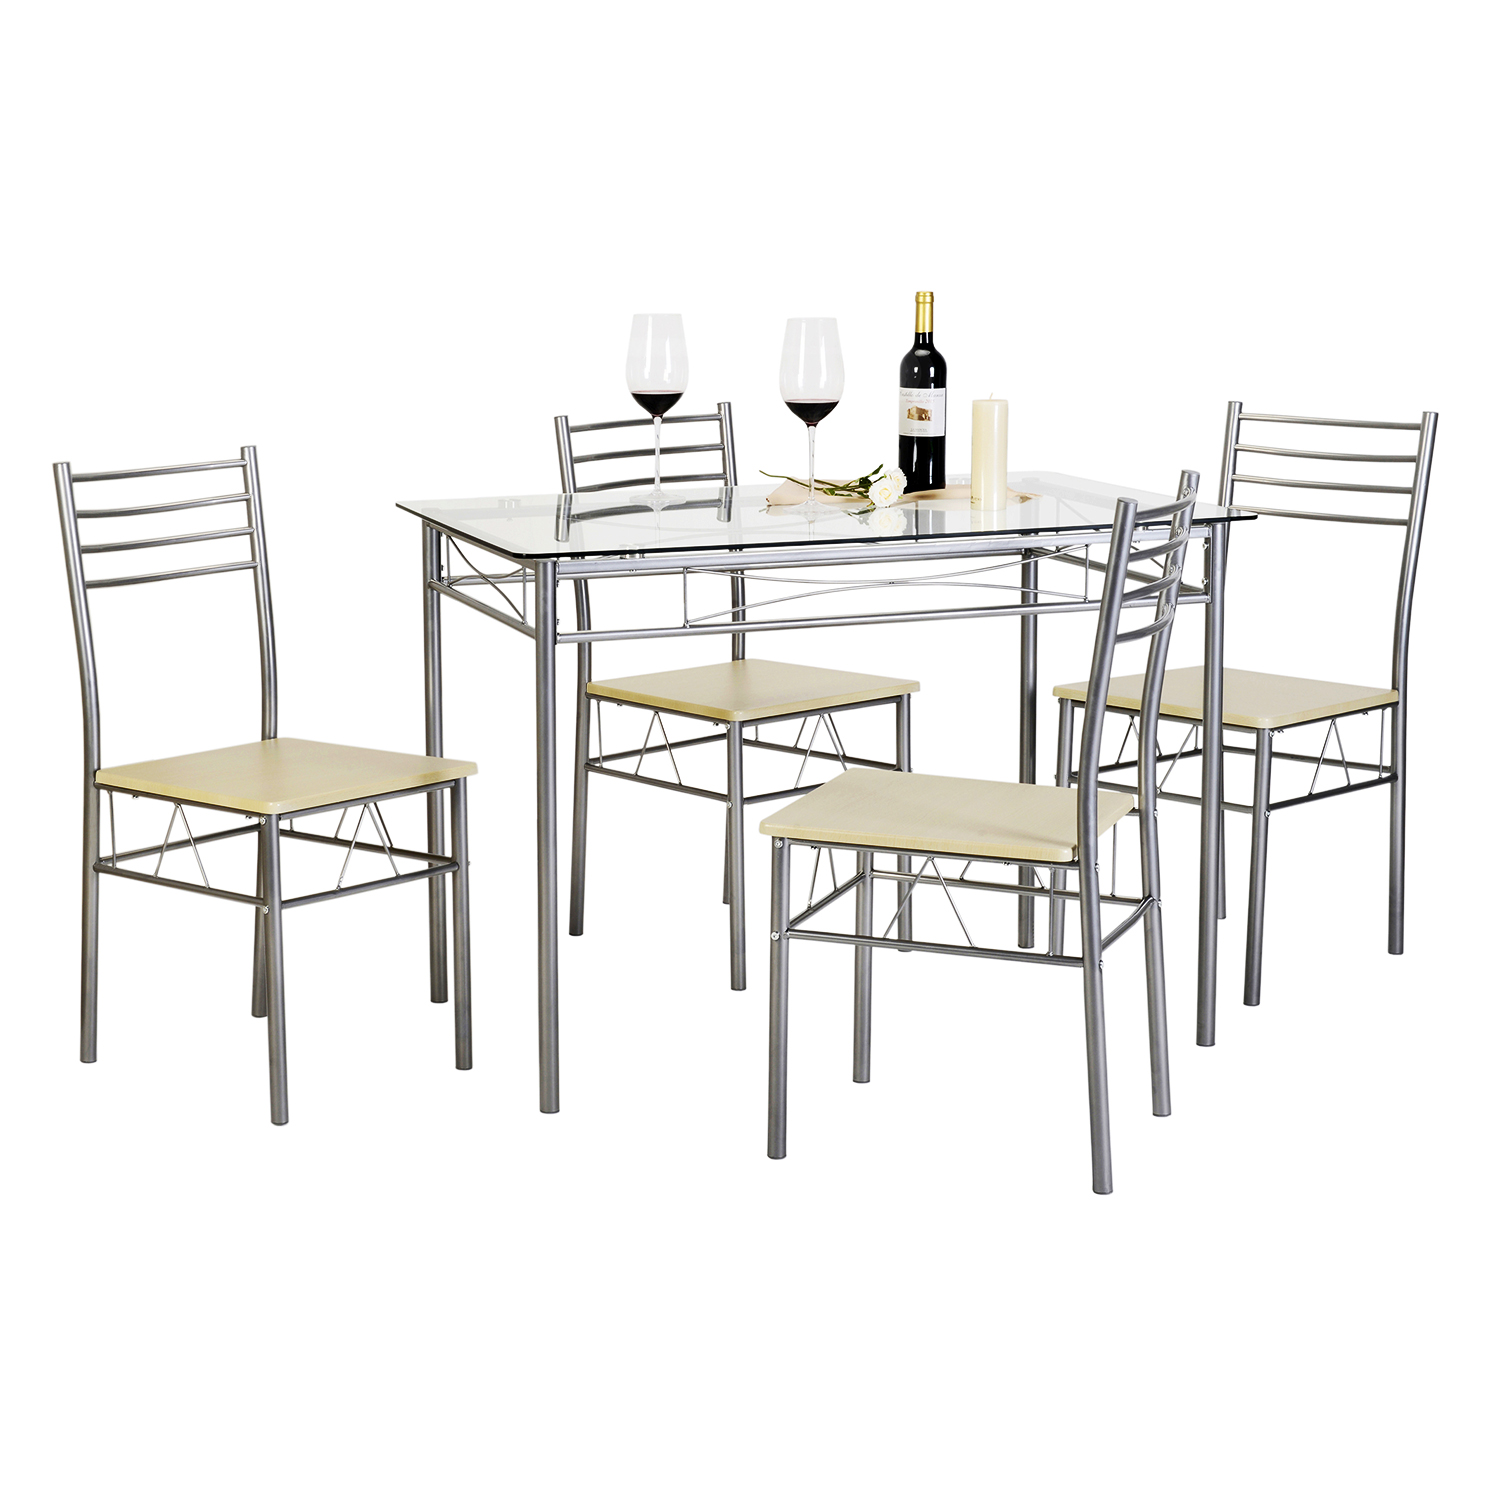 5 Pieces Dining Table Set with 4 Chairs Silver by